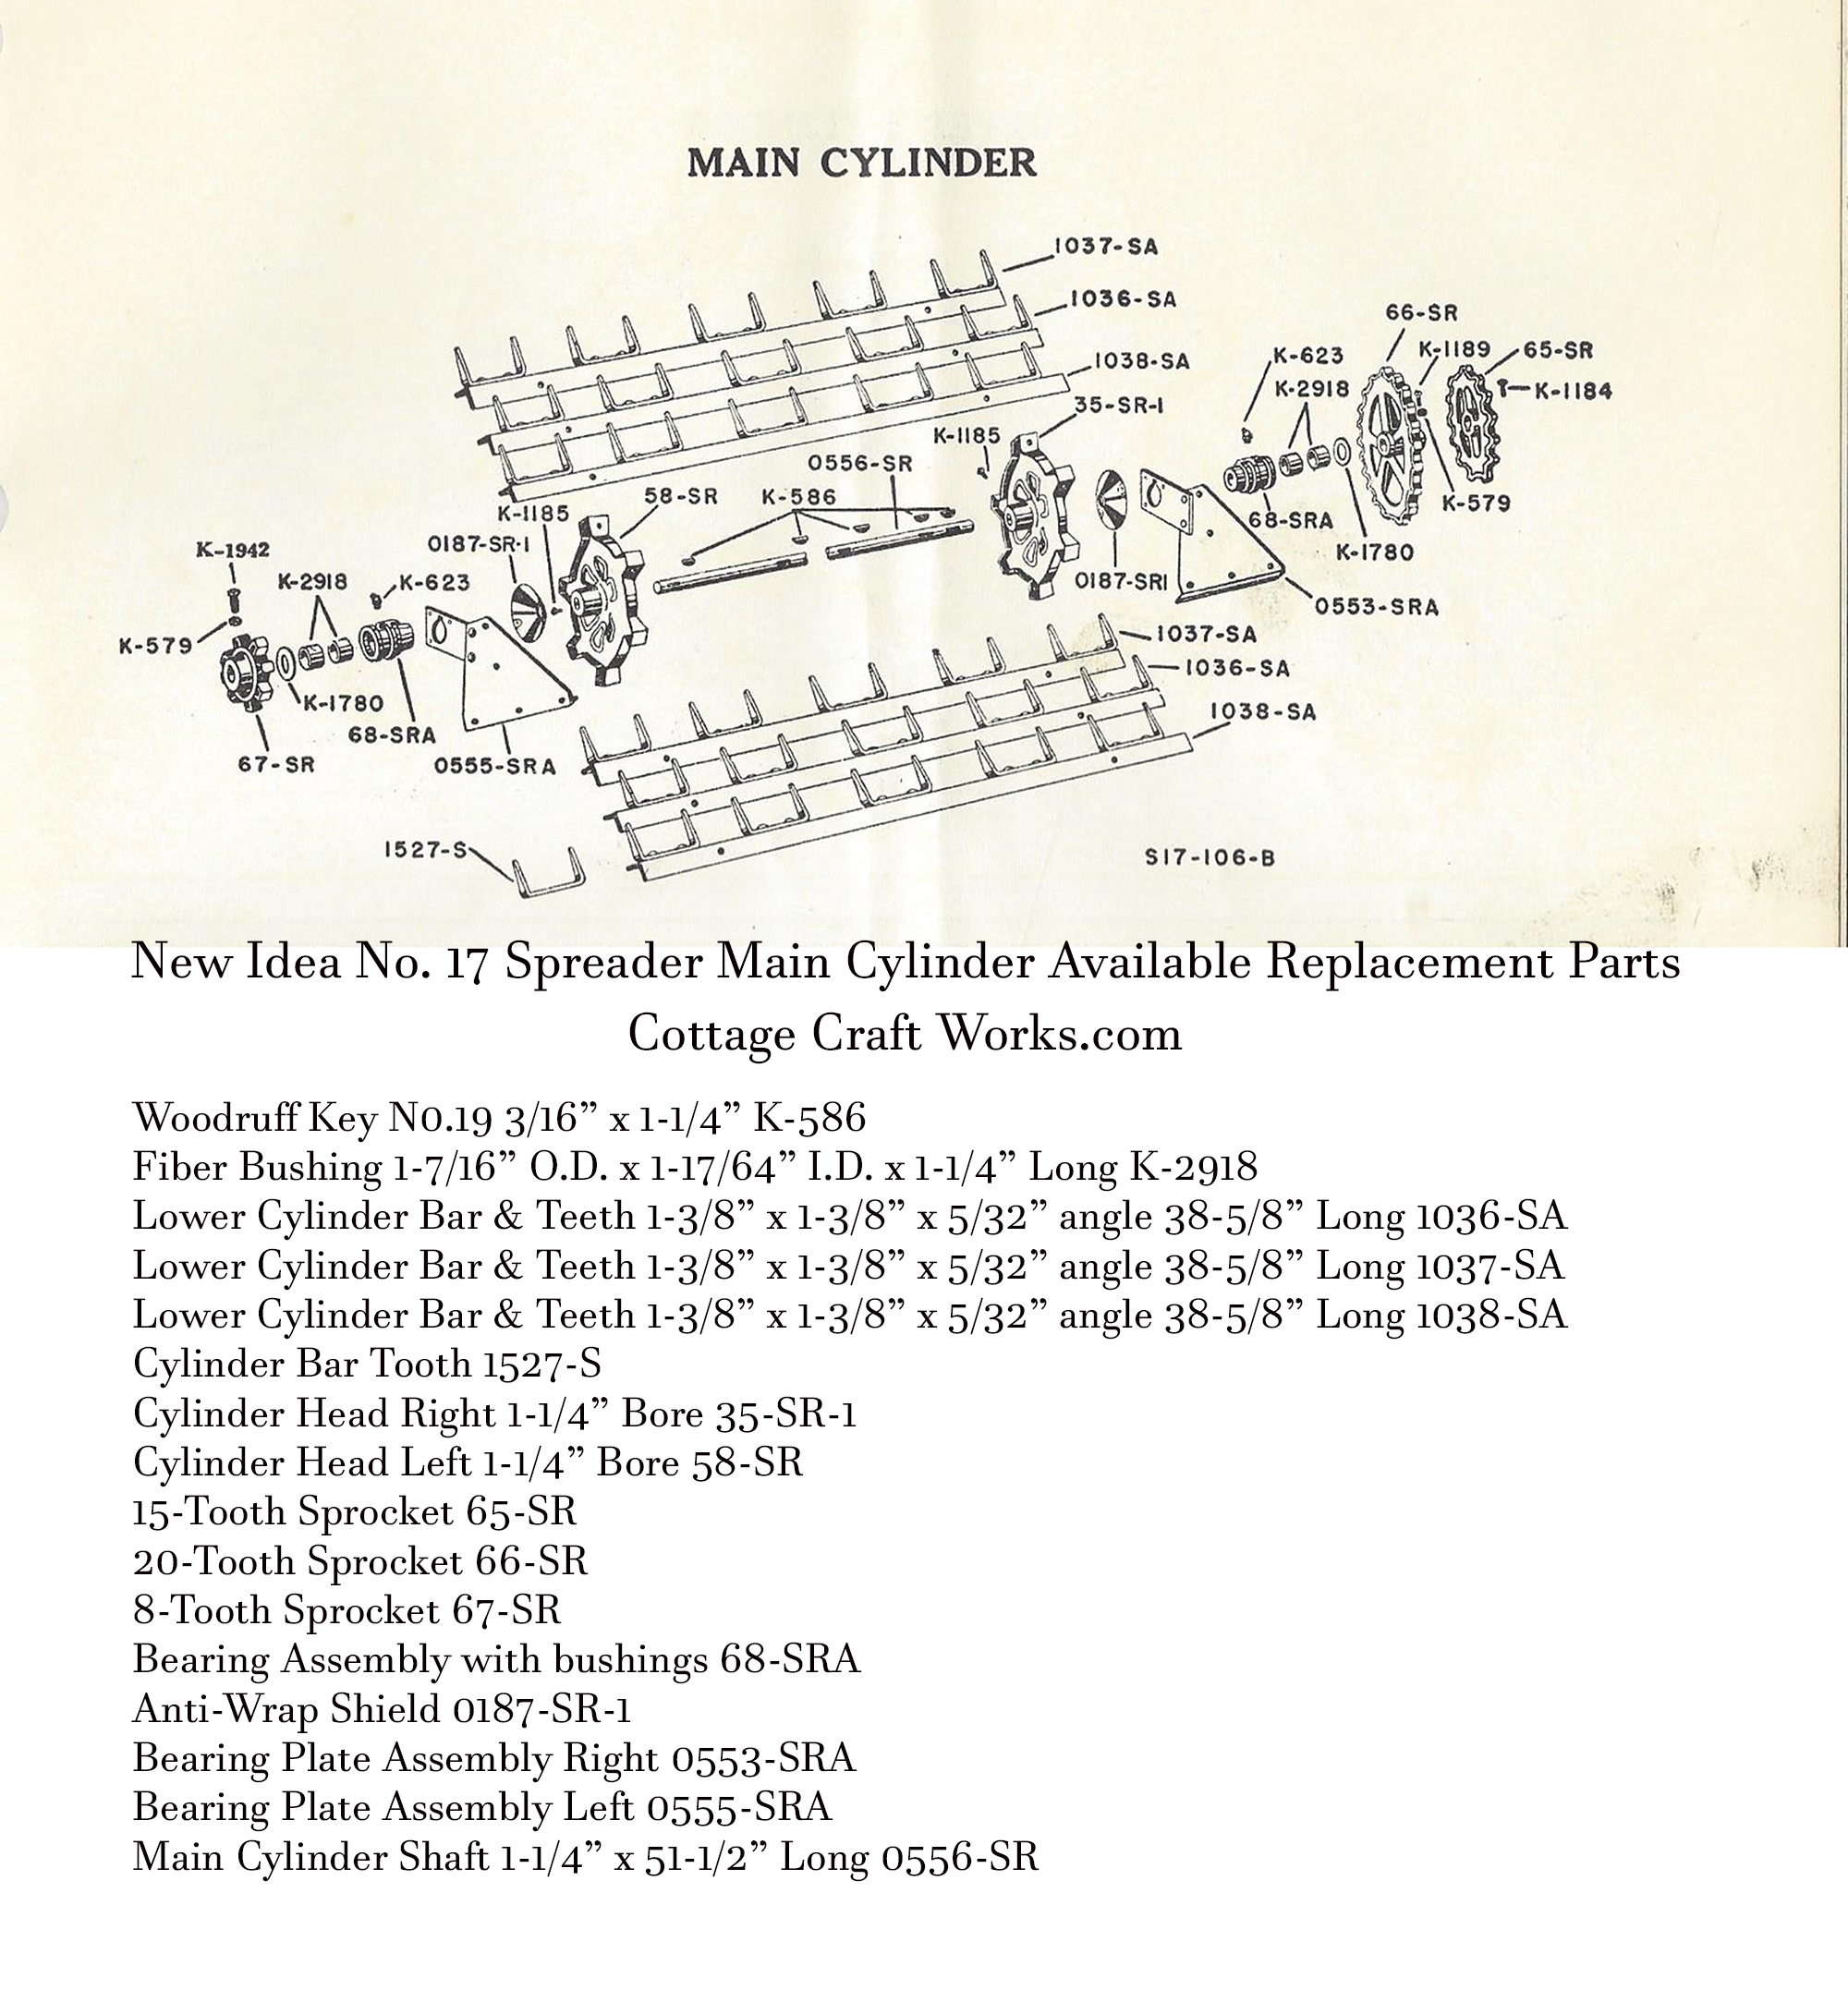 New Idea No. 17 Main Cylinder Replacement Parts